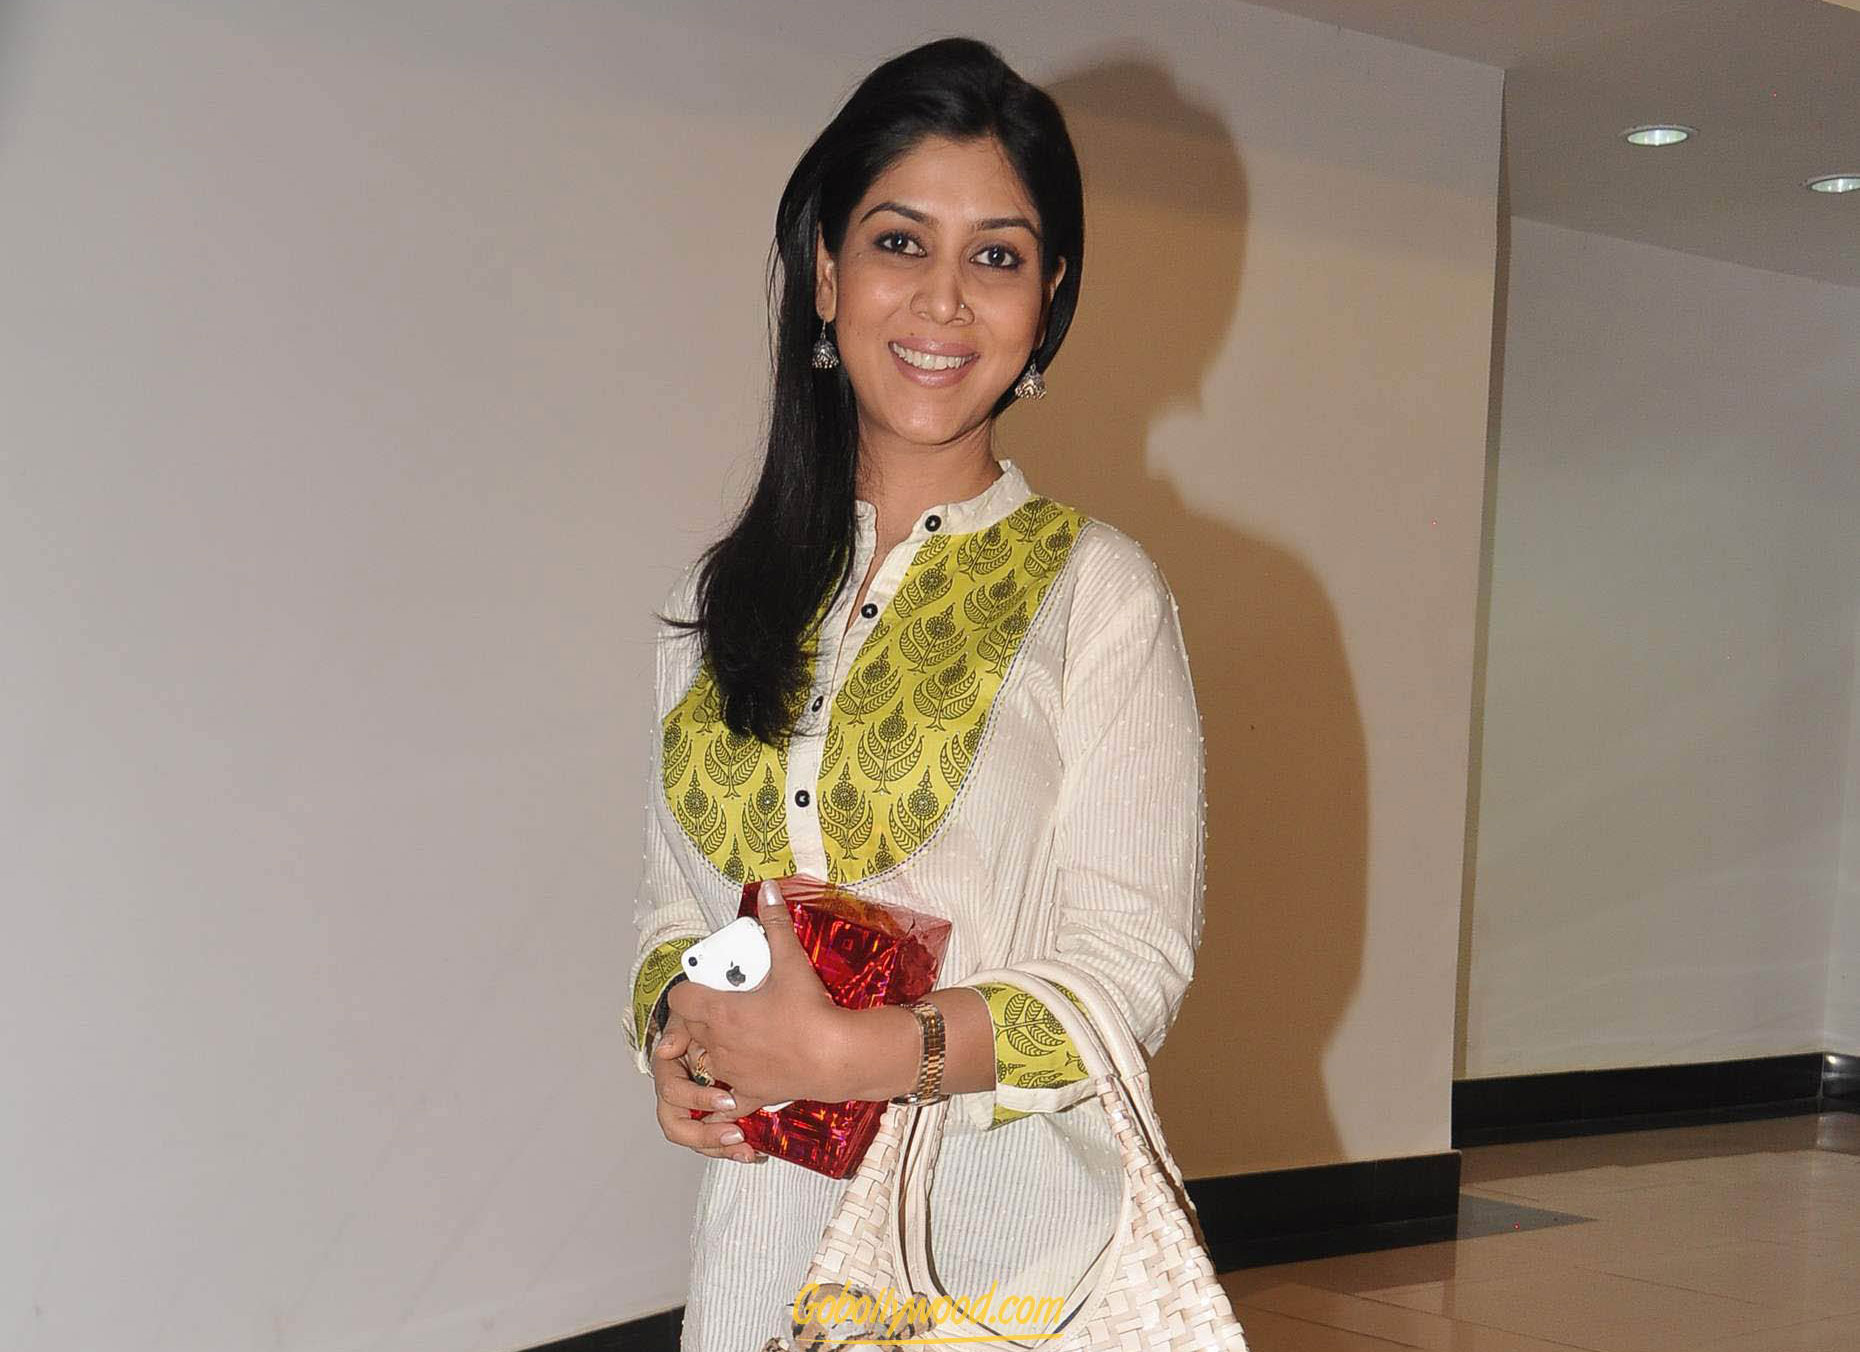 sakshi tanwar and husbandsakshi tanwar and husband, sakshi tanwar aamir khan, sakshi tanwar salman khan, sakshi tanwar, sakshi tanwar biography, sakshi tanwar marriage, sakshi tanwar husband name, sakshi tanwar facebook, sakshi tanwar married, sakshi tanwar personal life, sakshi tanwar latest news, sakshi tanwar marriage photos, sakshi tanwar hot pics, sakshi tanwar navel, sakshi tanwar twitter, sakshi tanwar kiss, sakshi tanwar photos, sakshi tanwar husband photos, sakshi tanwar ki chudai, sakshi tanwar husband in real life